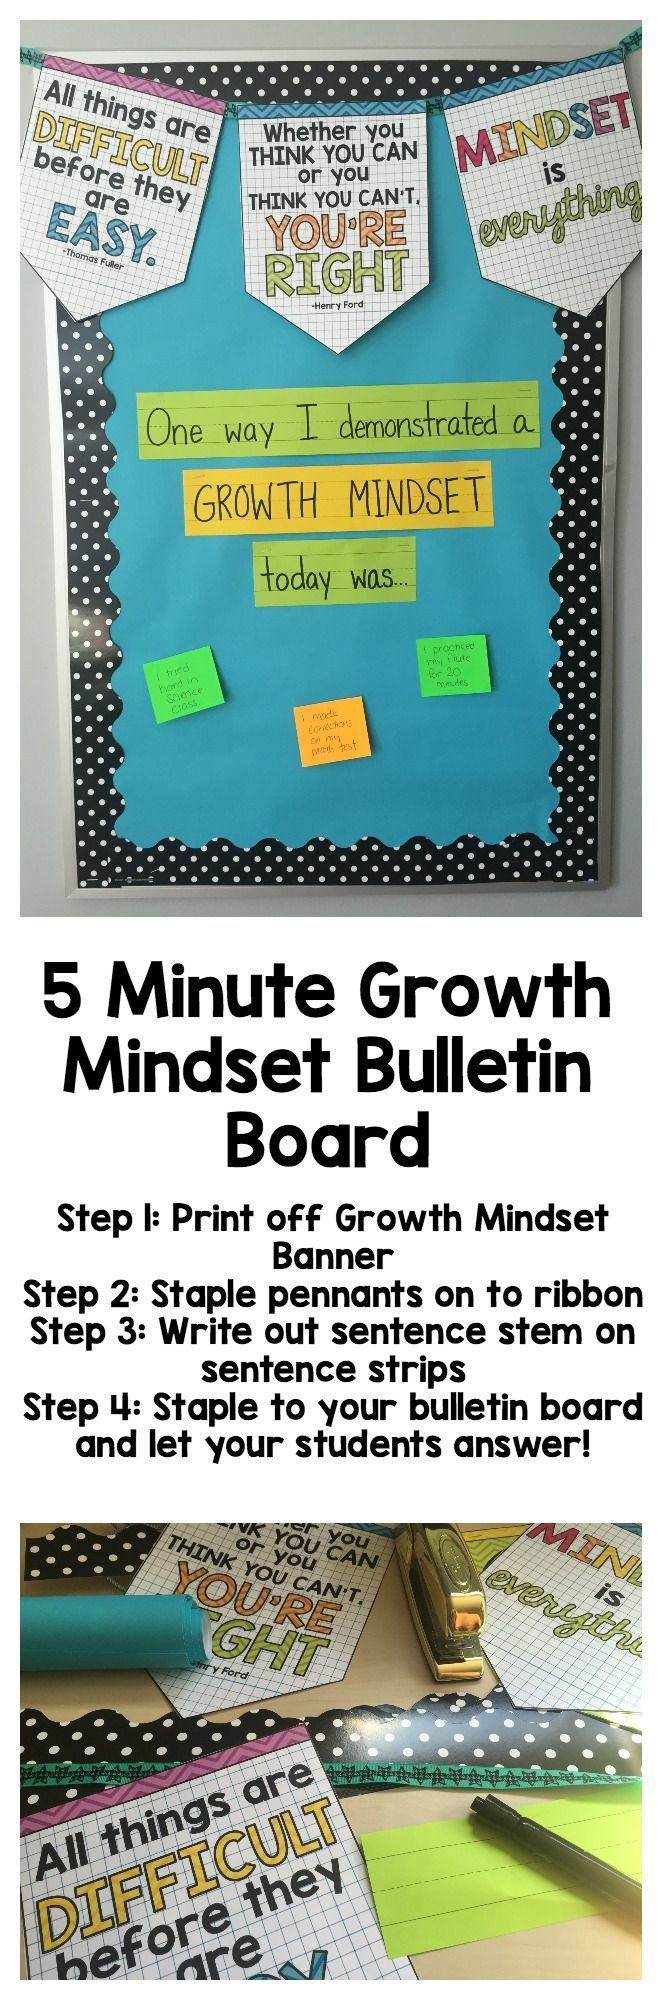 Love this idea that allows students to specifically share ways they demonstrated a growth mindset.